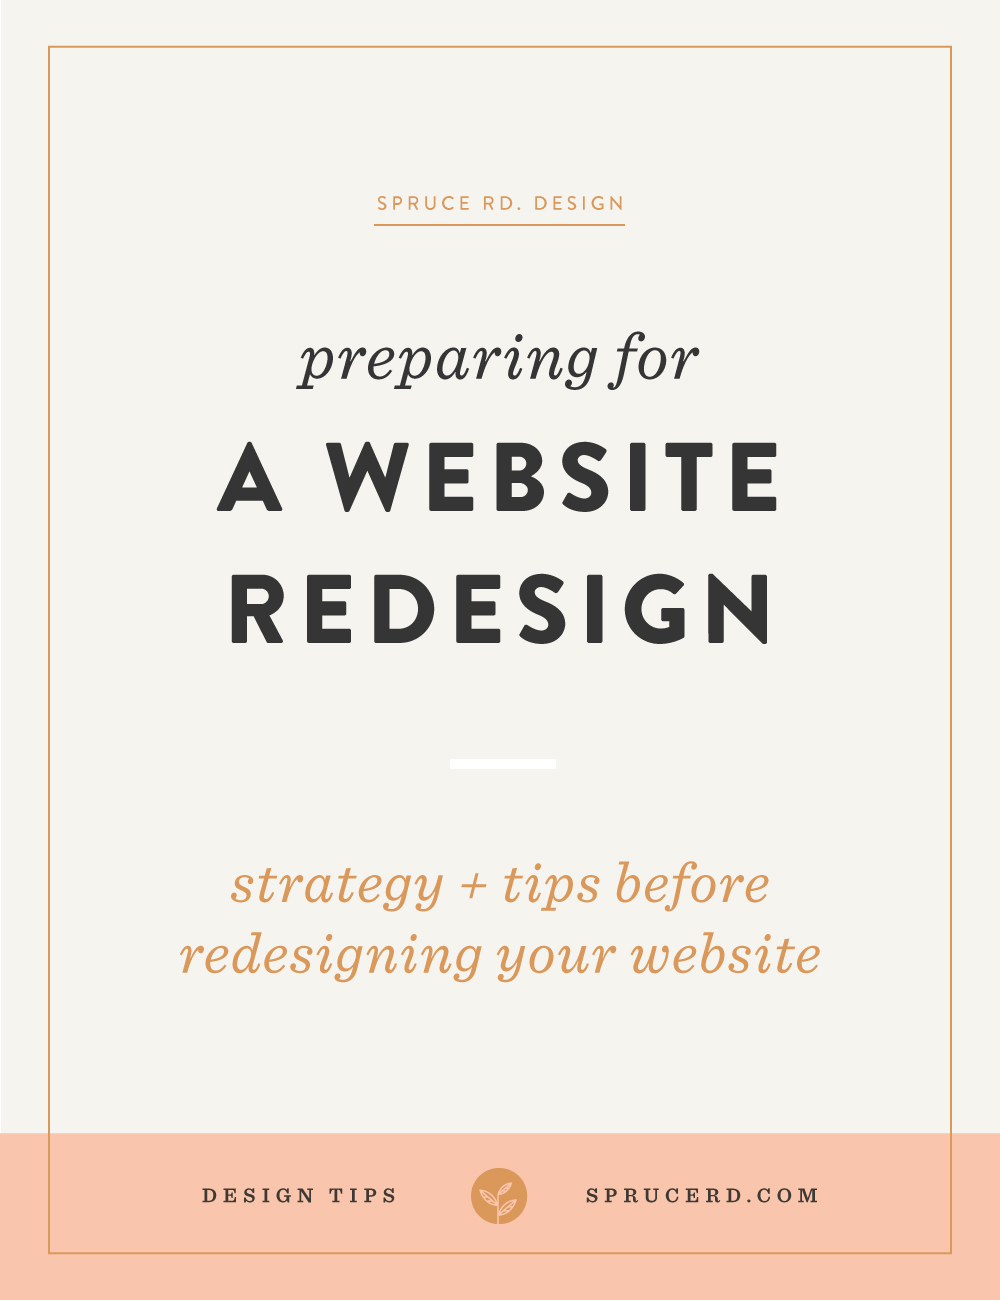 Preparing for a website redesign | Spruce Rd. — Are you prepping to redesign your website? Through these tips you'll learn how to plan for the redesign, better reach your audience and improve the functionality of your site. Learn from how I plan to redesign my site in this behind the scenes peek.